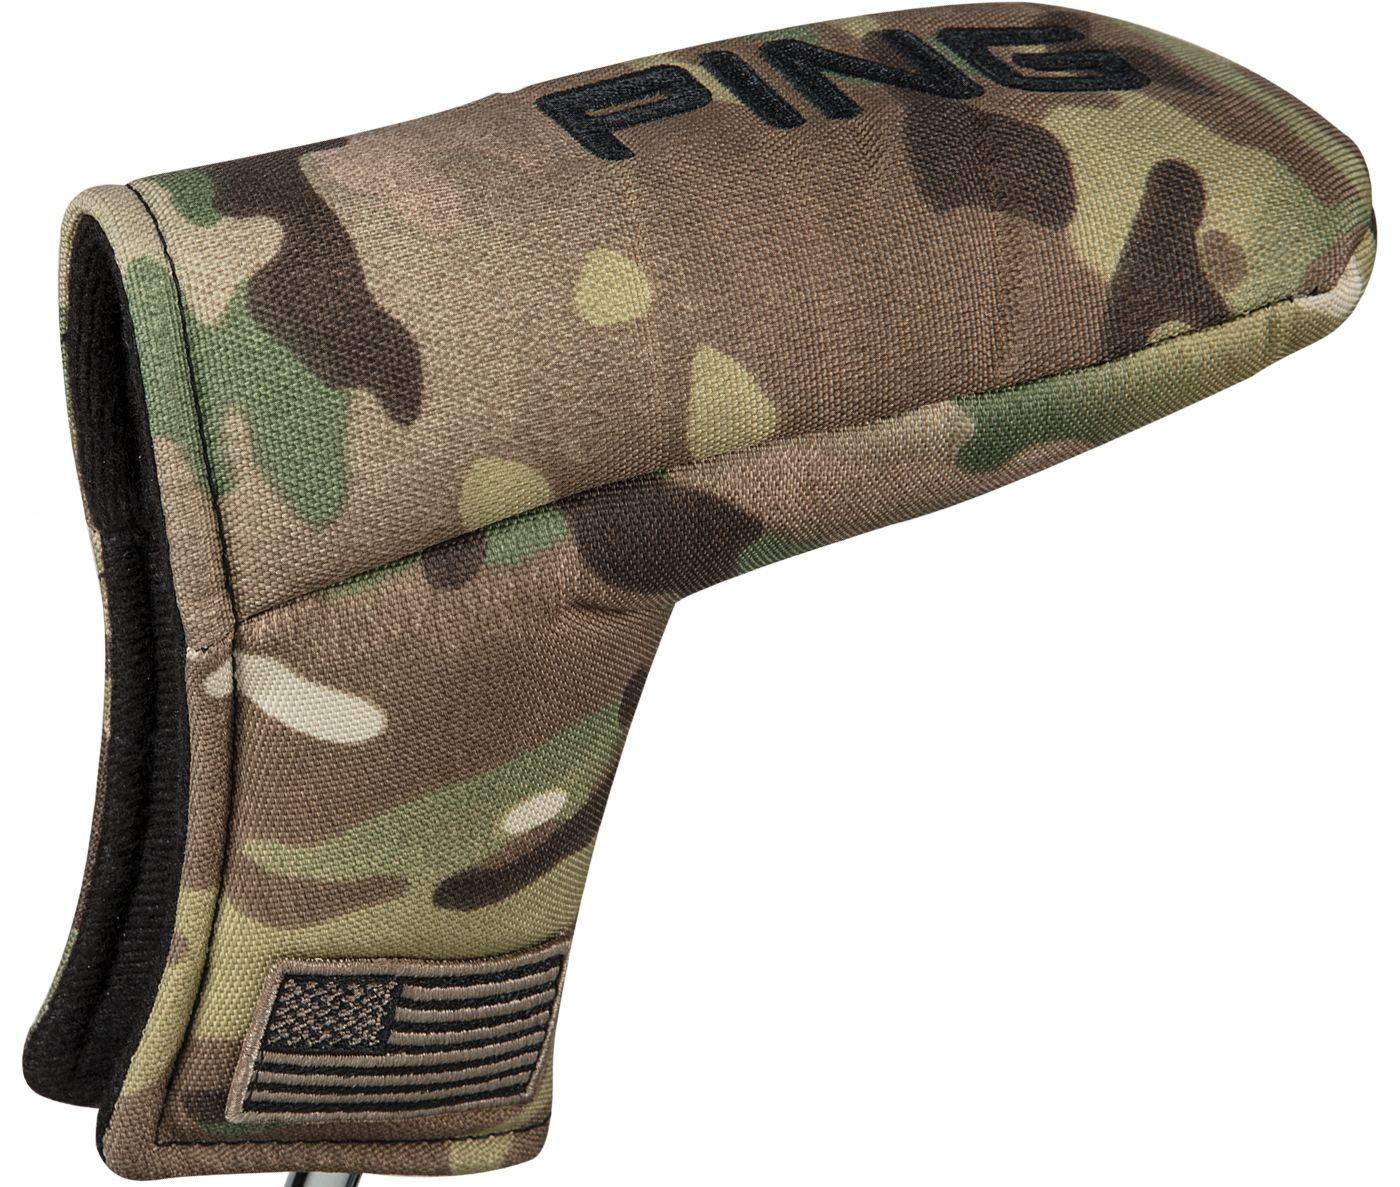 PING MultiCam Blade Putter Cover